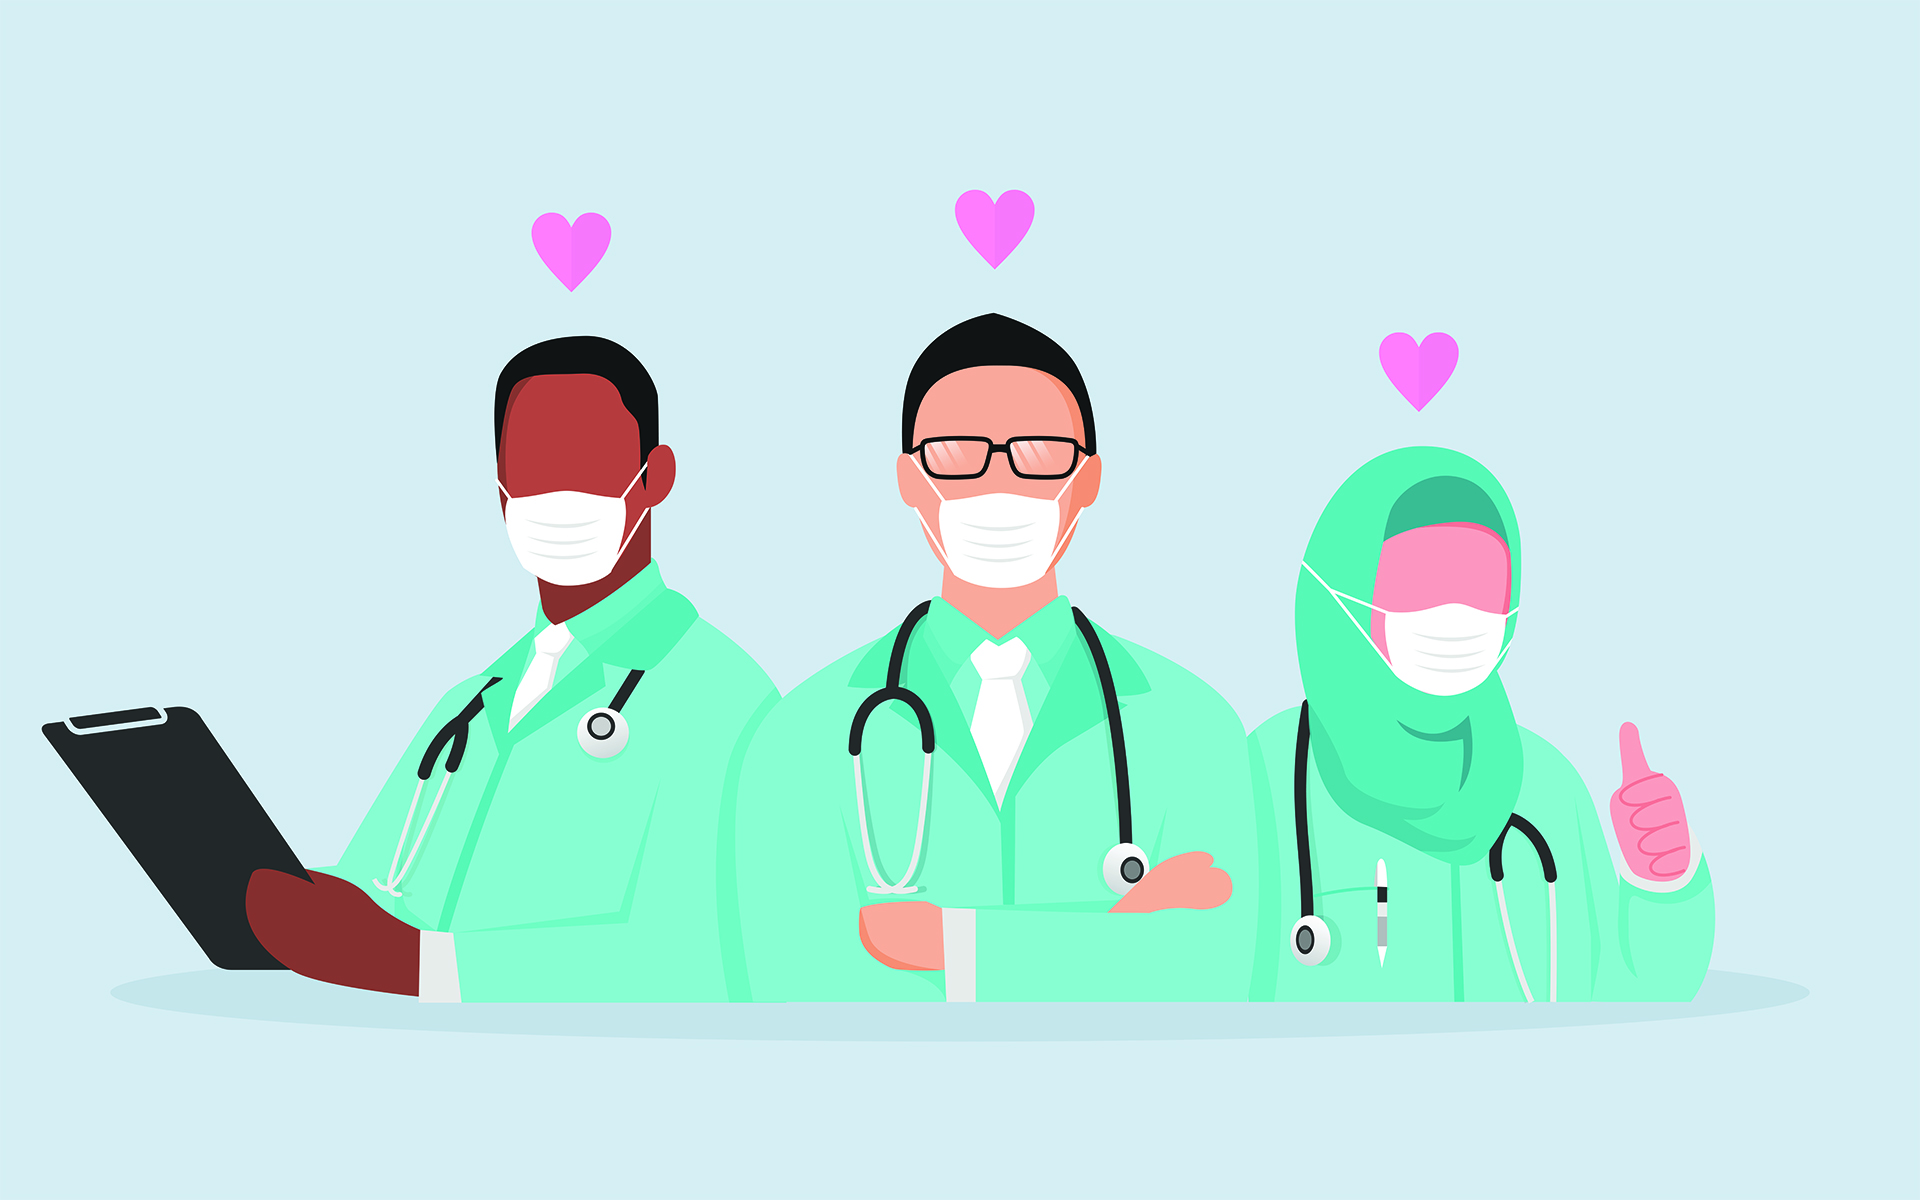 A Compassion Practice For Healthcare Workers